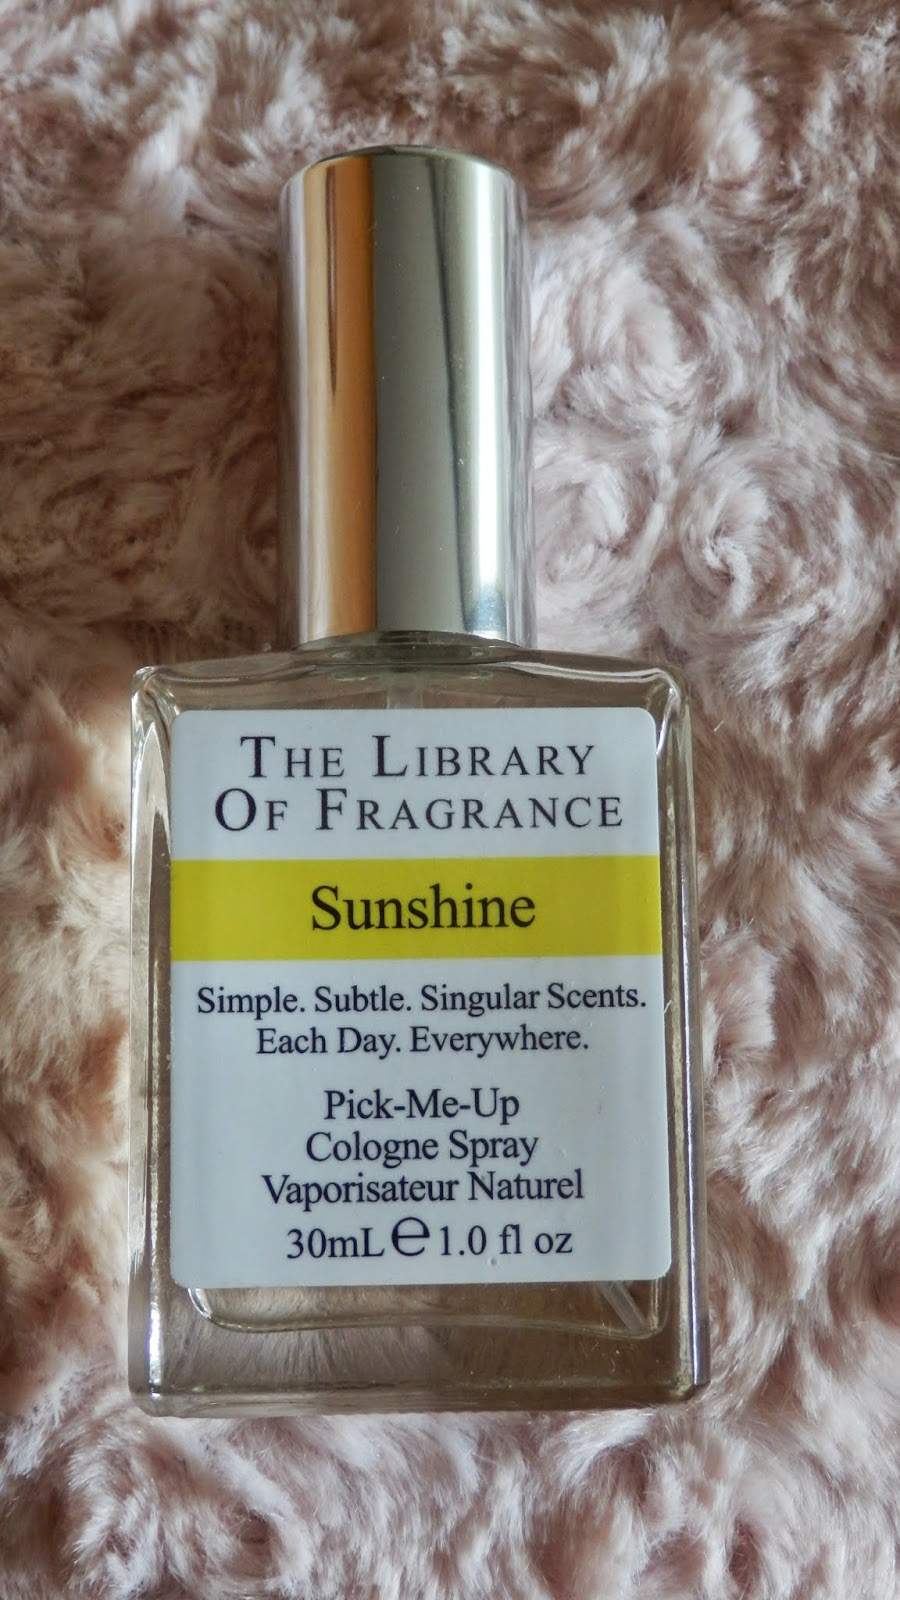 The Library of Fragrance Sunshine Cologne Spray